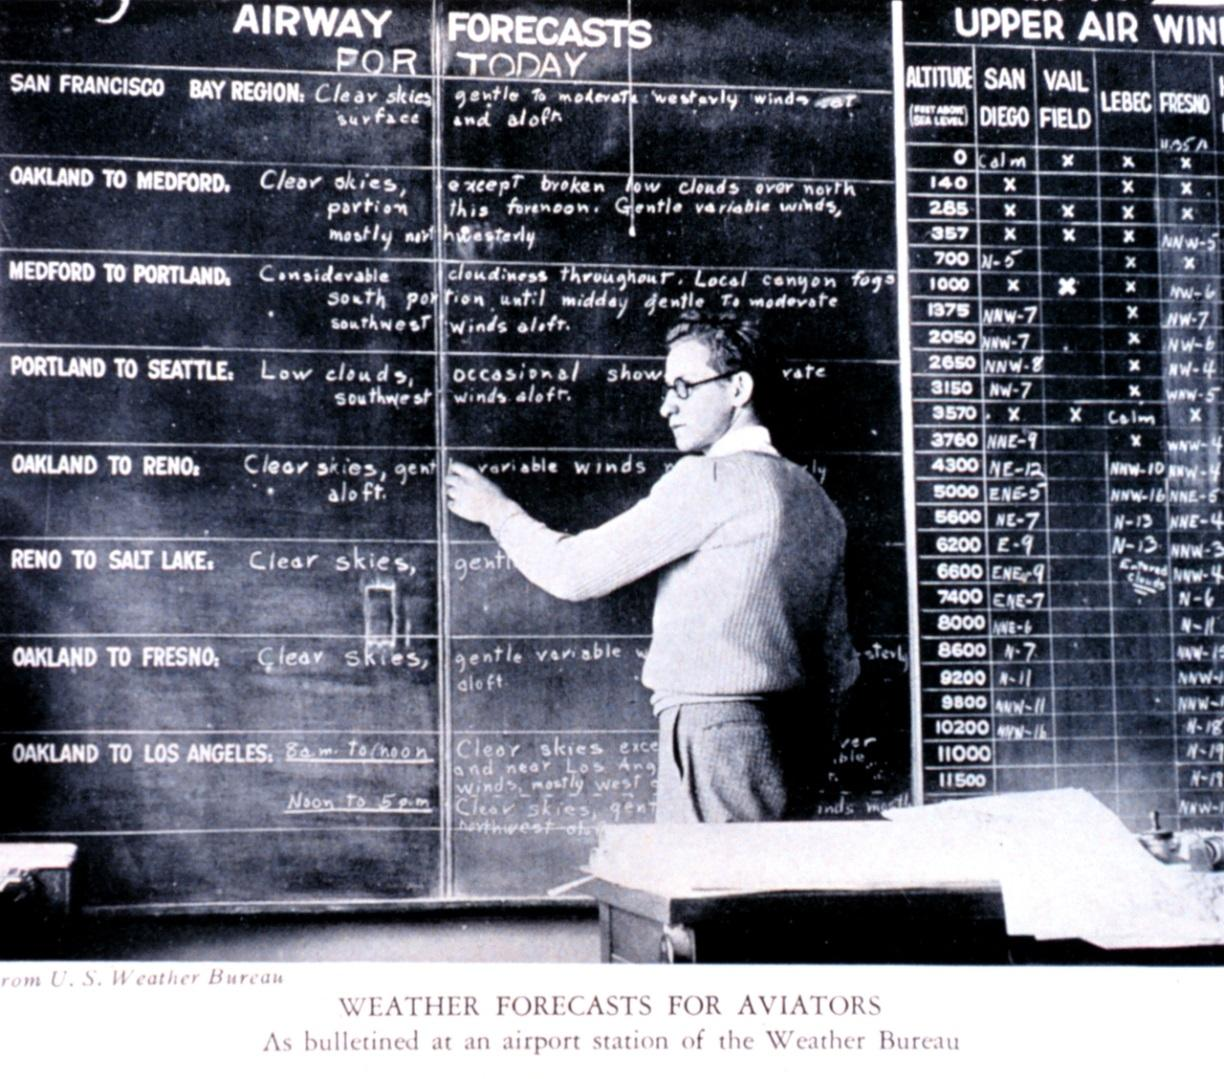 NOAA Library, Regional headquarters meteorologist keeping track of aviation weather, 1975.